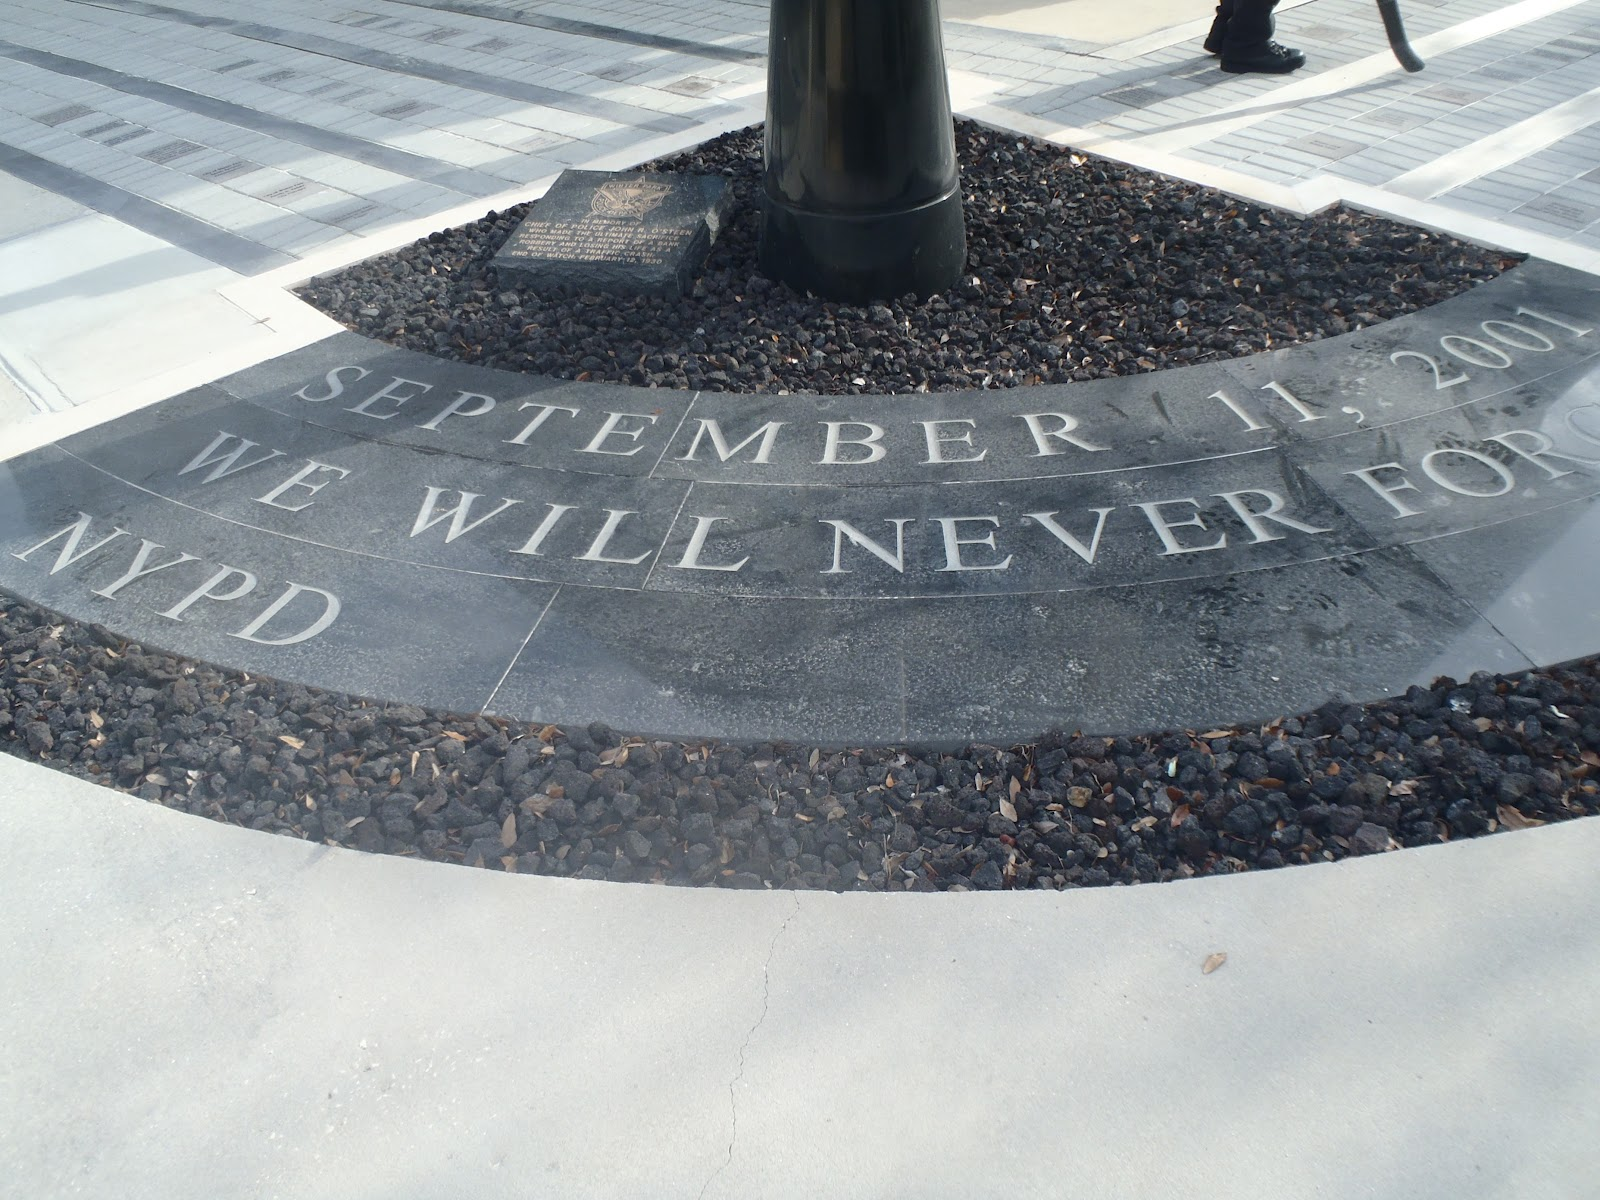 glimpses four 9 11 memorials in central florida the orlando